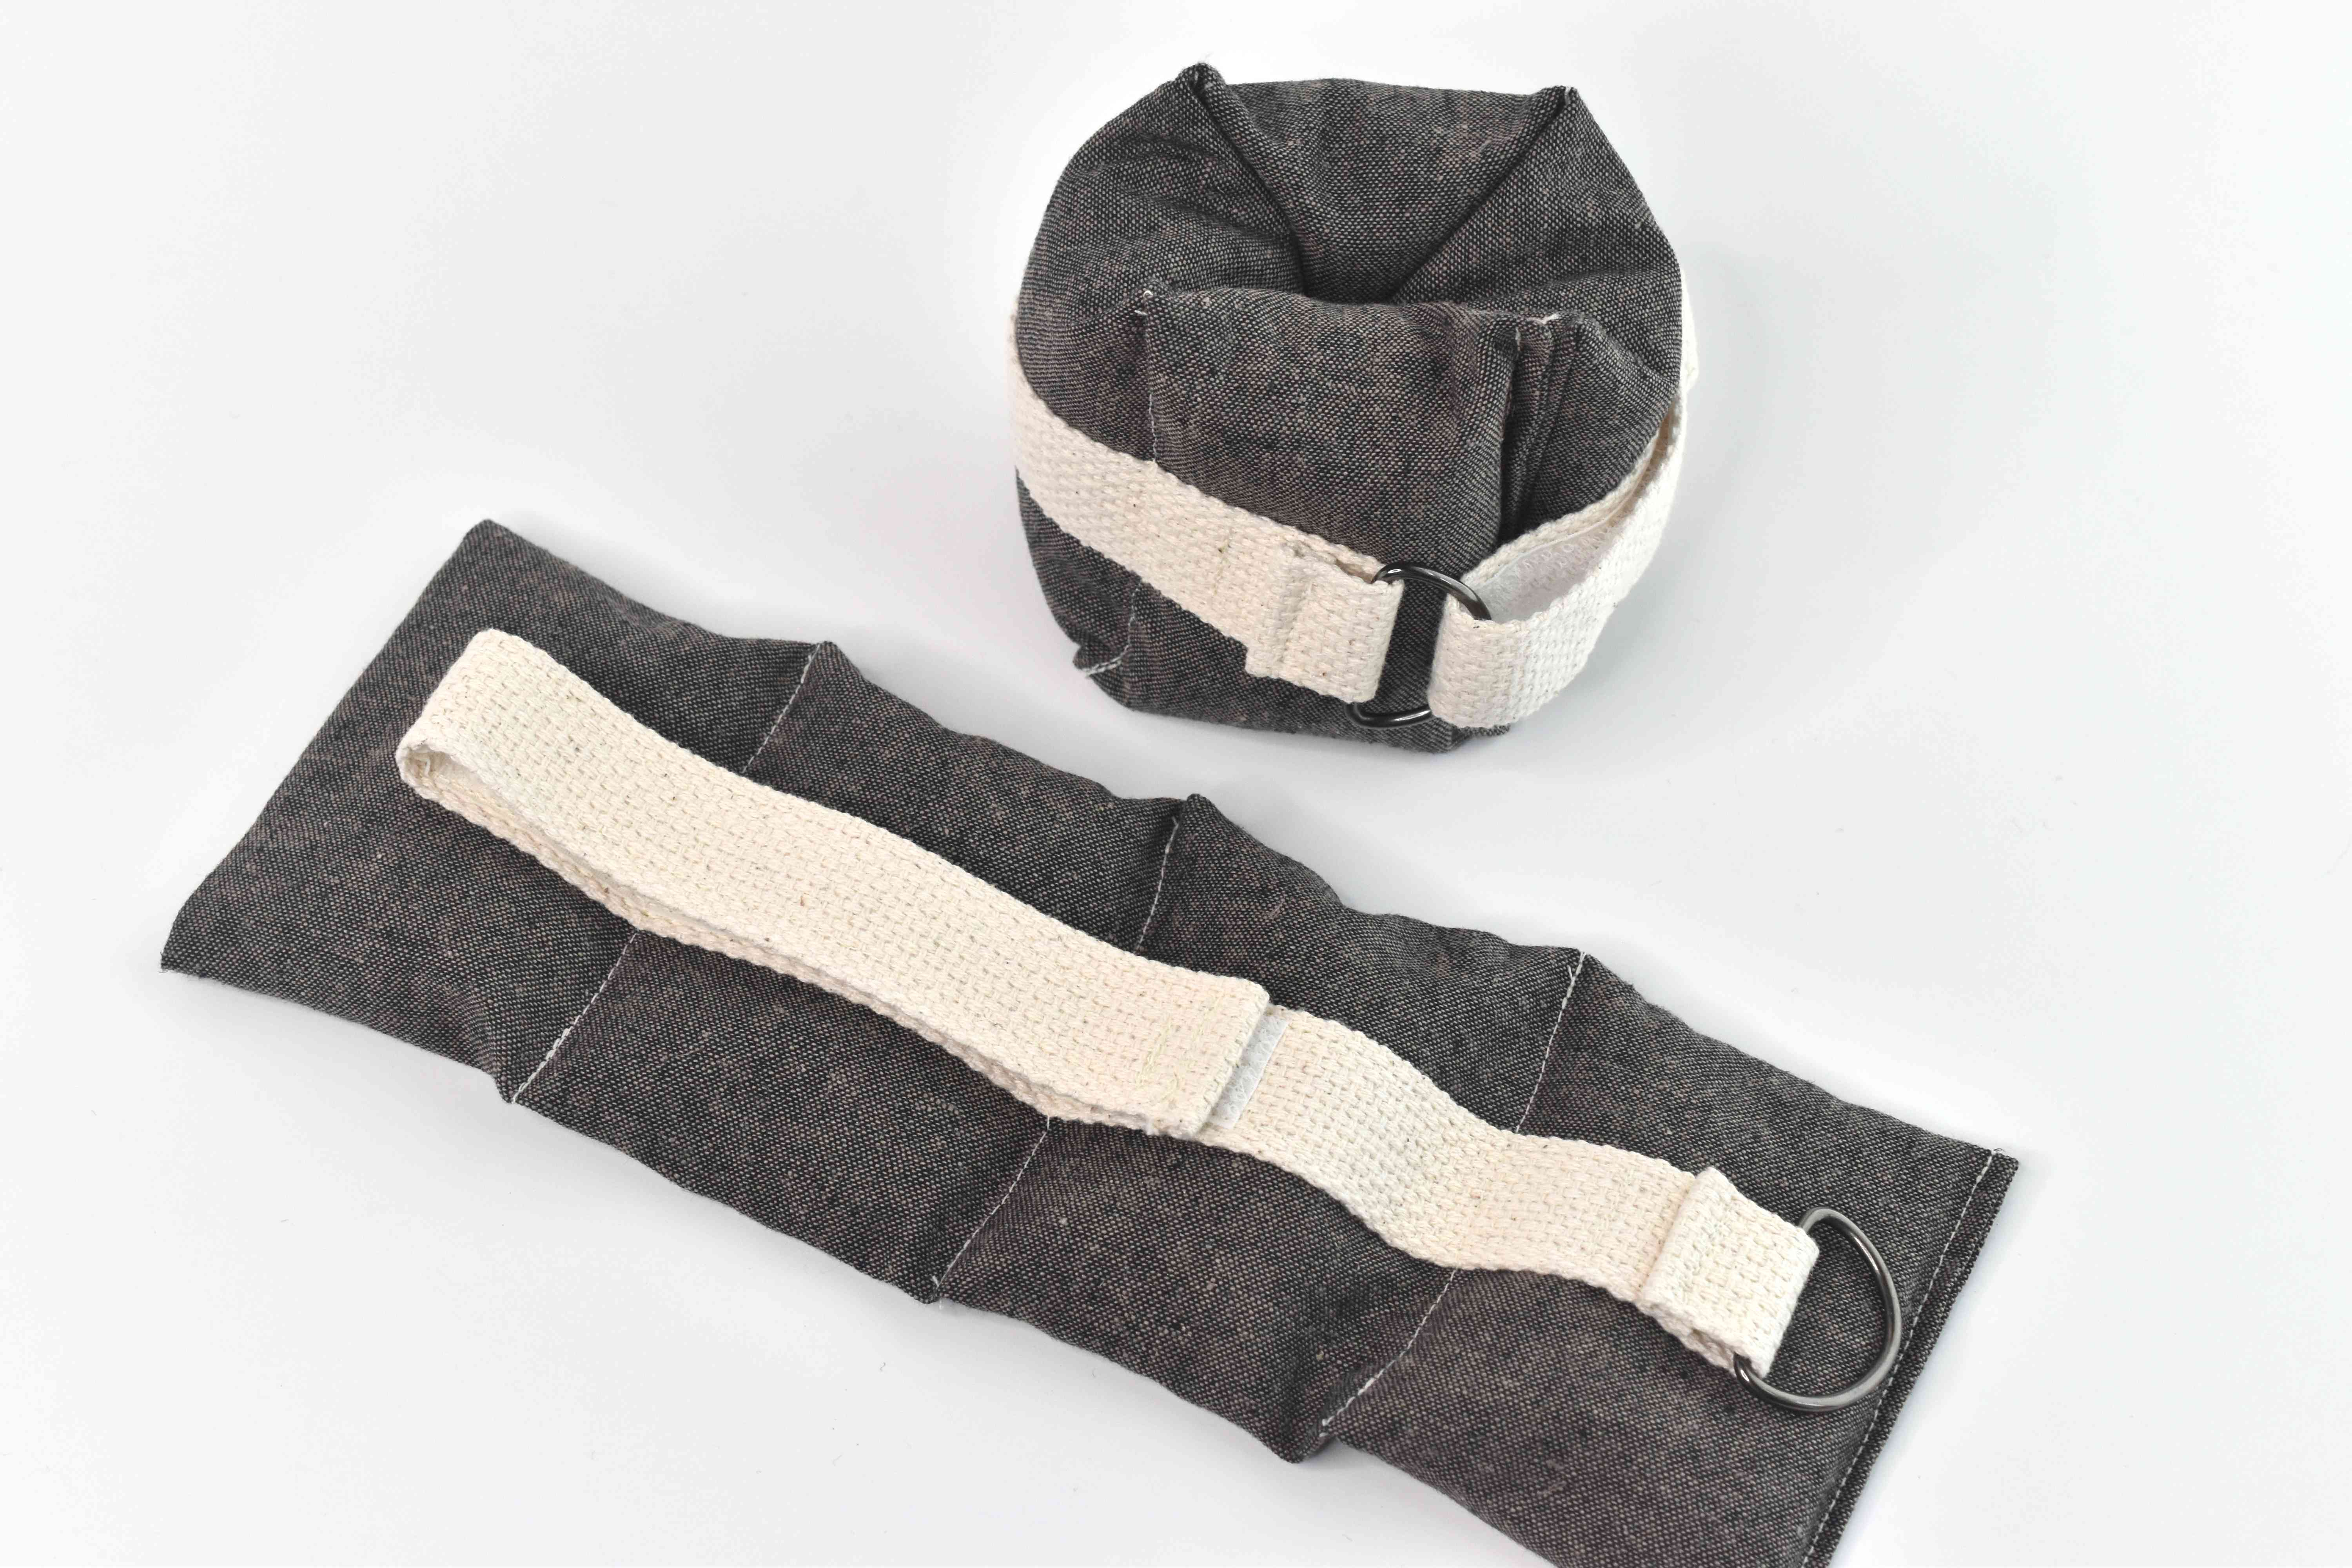 DIY Wrist Weights Sewing Project